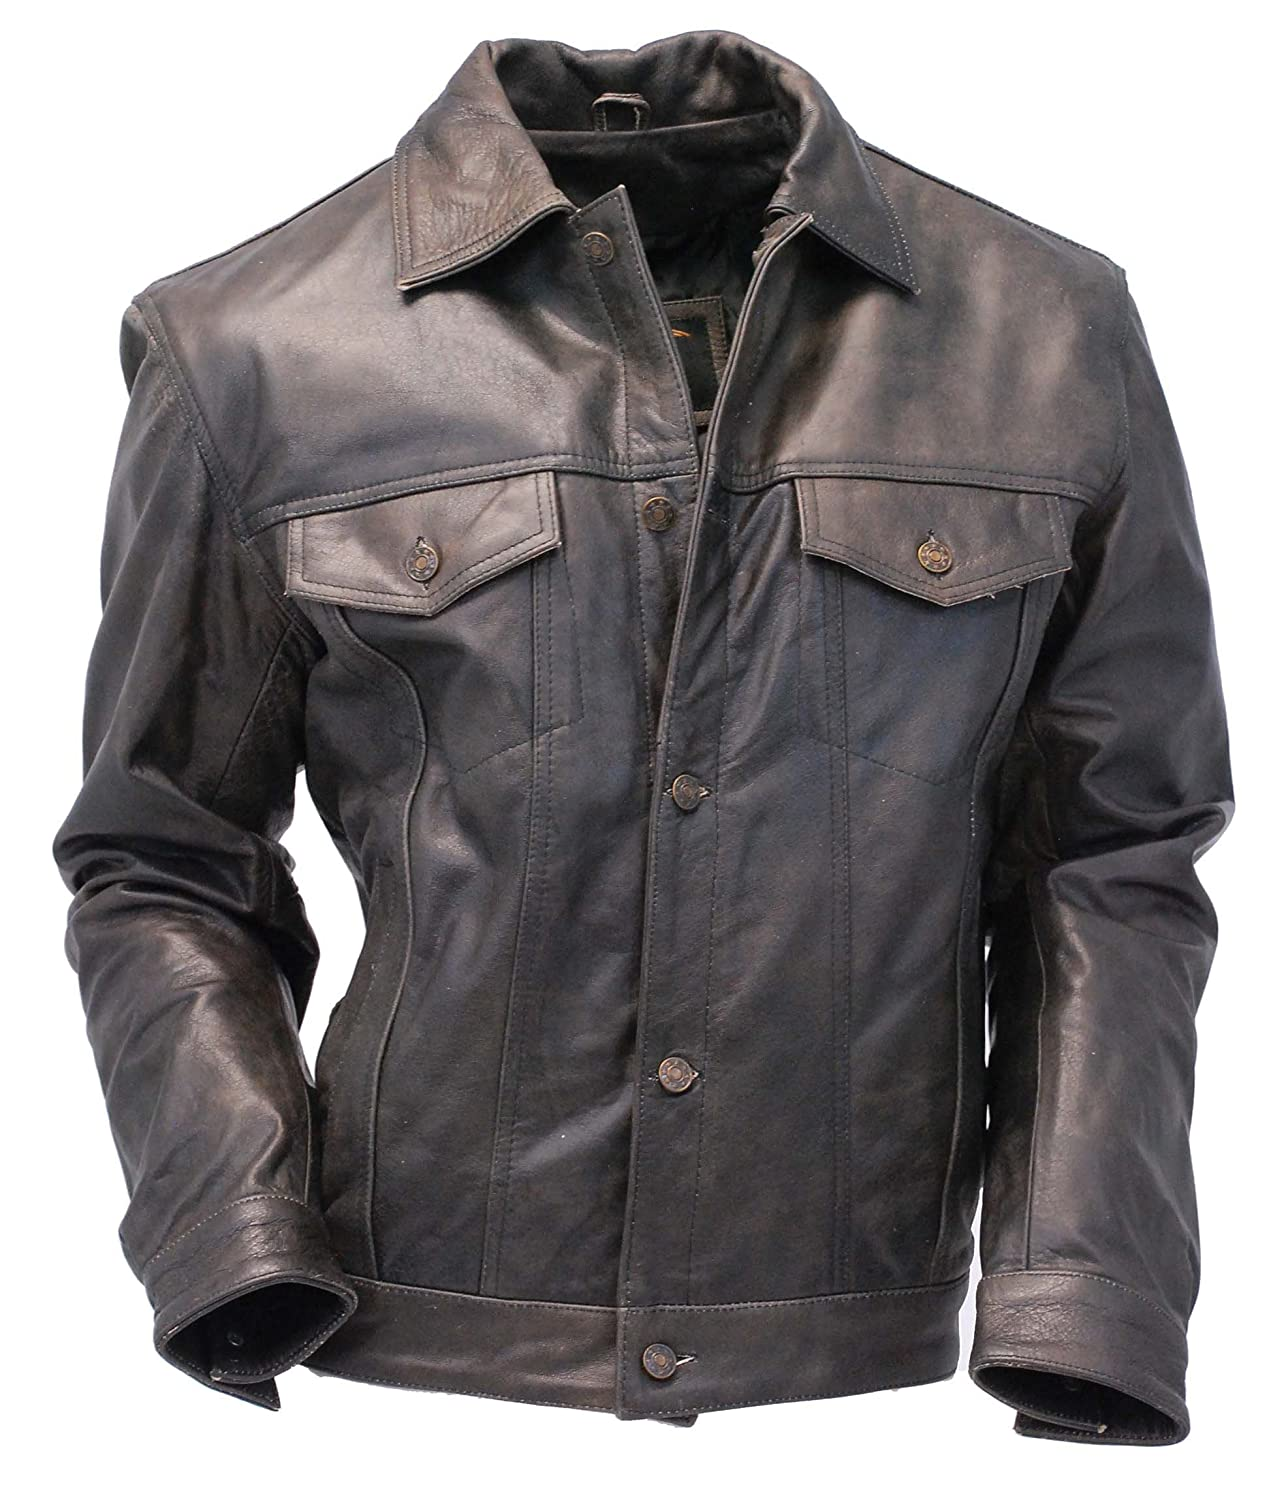 4cccabfa1 Jamin' Leather Vintage Leather Jean Jacket - Denim Style #M321GY at ...